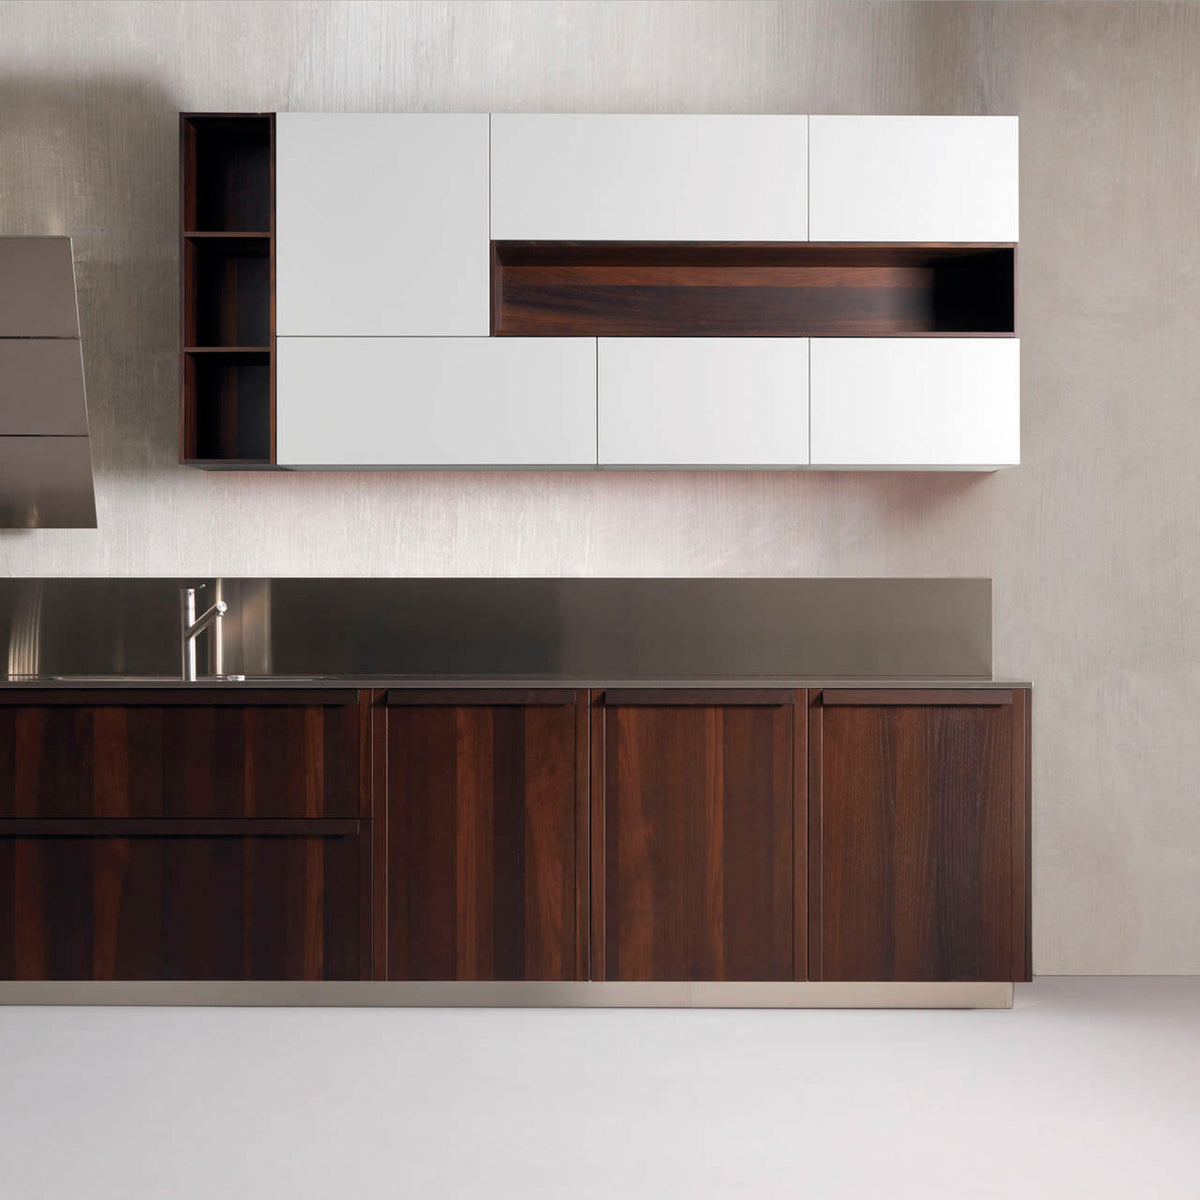 Designer Italian kitchens by Effeti